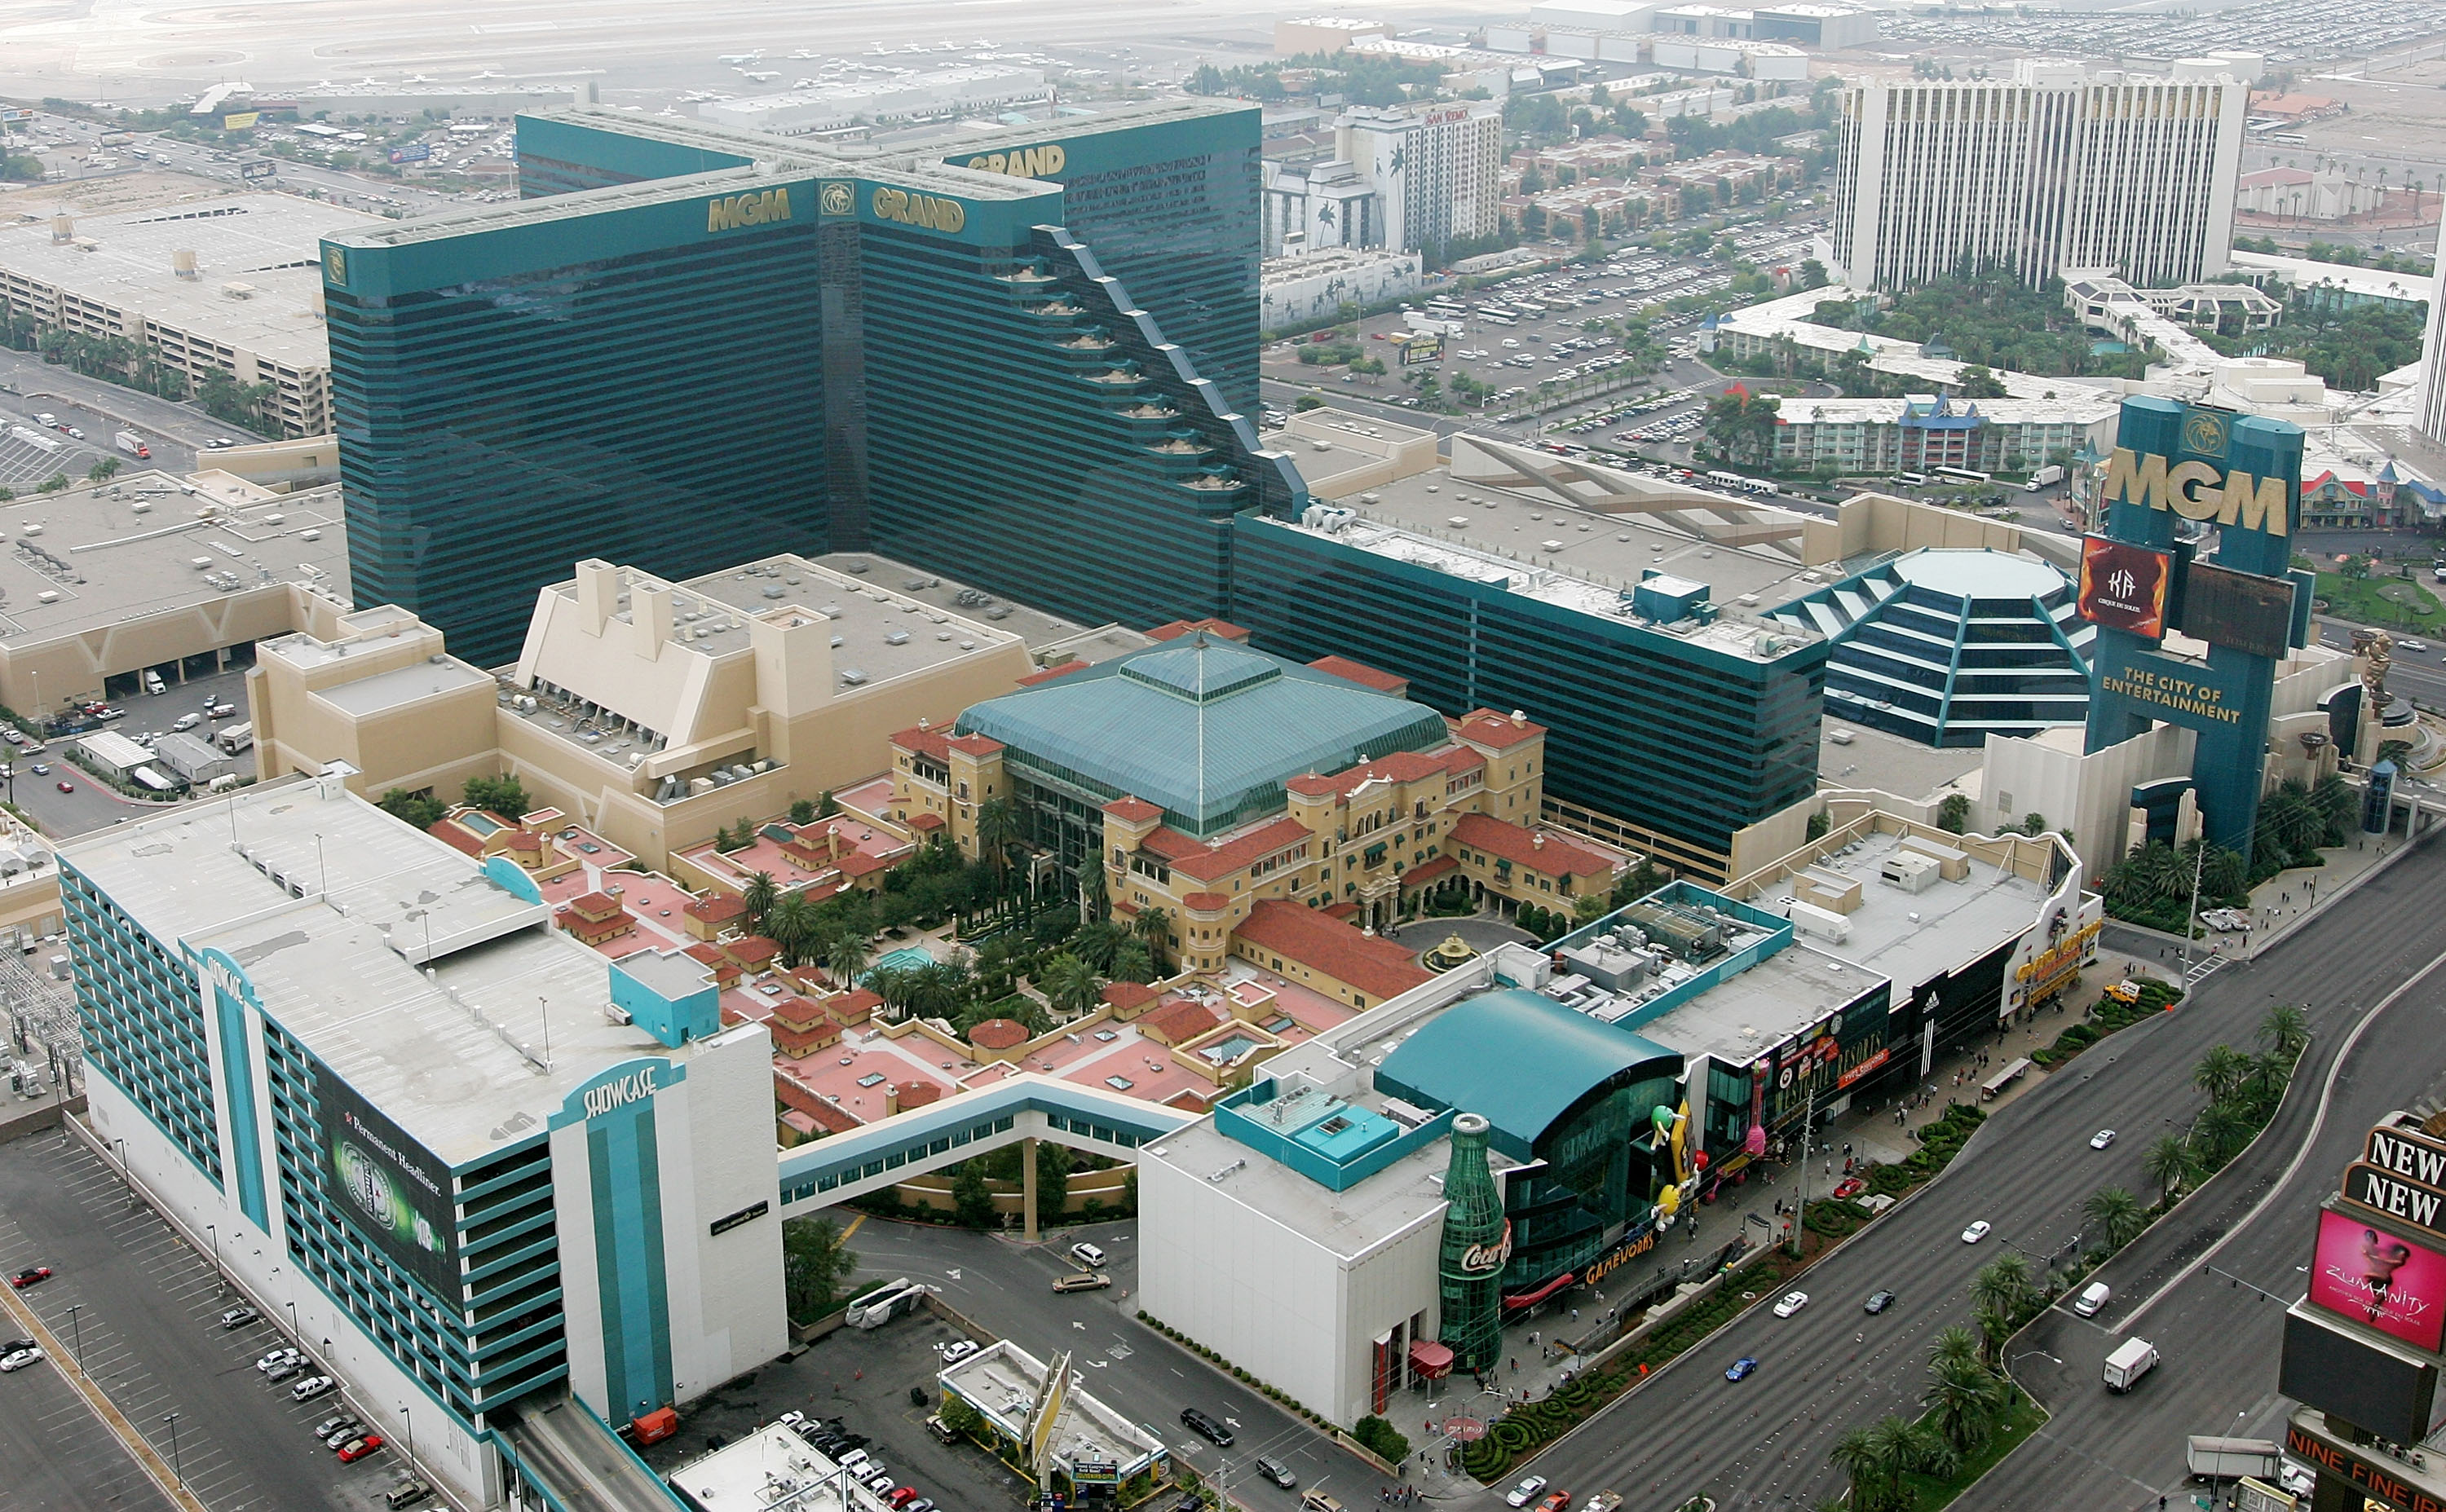 LAS VEGAS - OCTOBER 19: An aerial photo shows the MGM Grand Hotel/Casino on the Las Vegas Strip October 19, 2005 in Las Vegas, Nevada. (Photo by Ethan Miller/Getty Images)